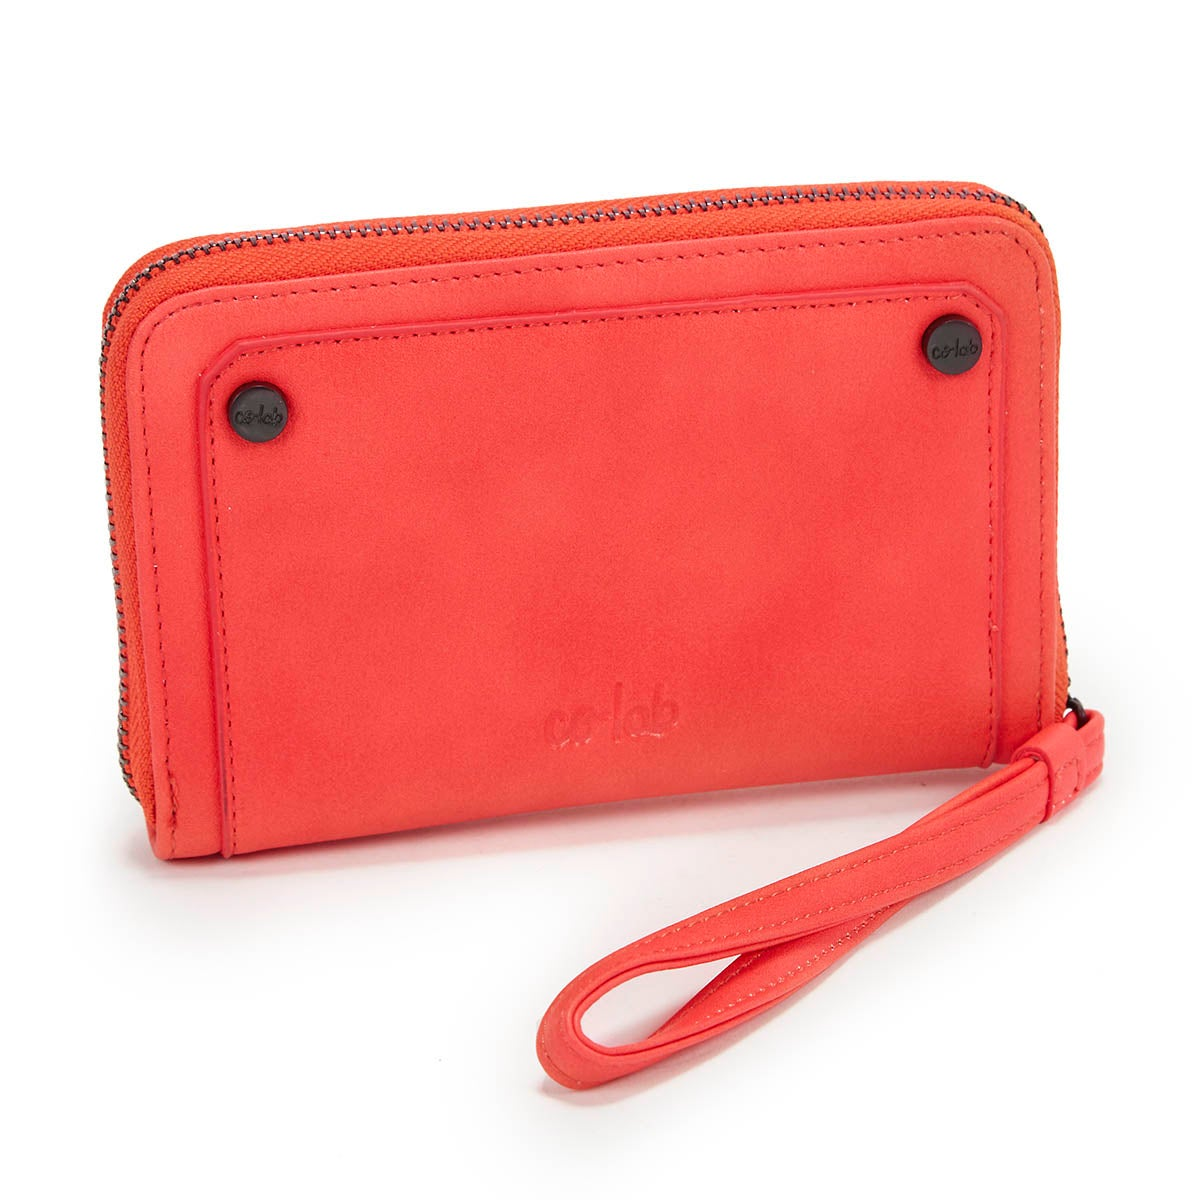 Lds coral zip up mini wallet